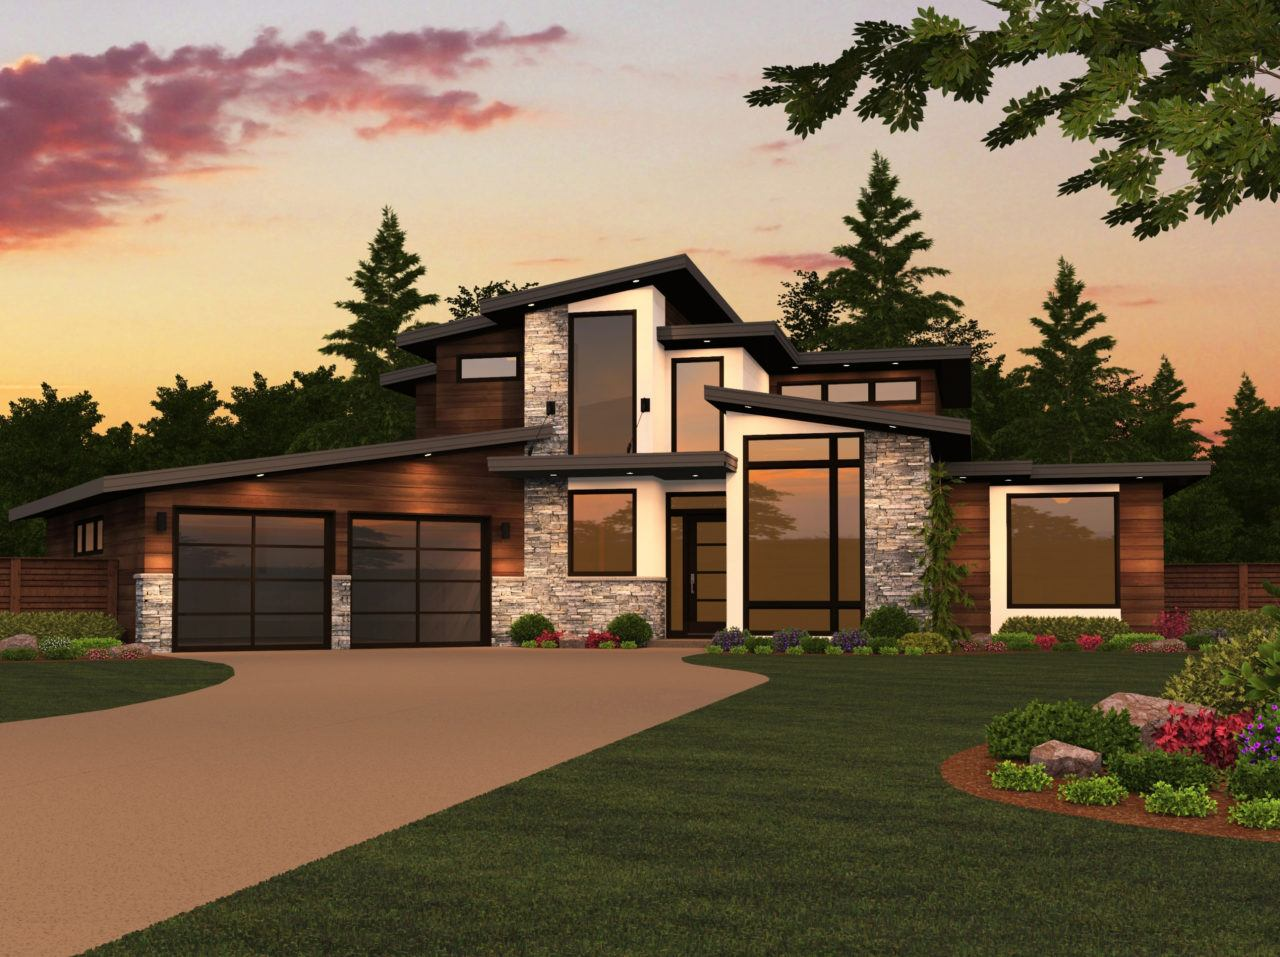 MM 3311 DALLAS HOUSE PLAN FRONT VIEW 1280x957 - 38+ Small Two Story Modern Style Modern House Design Images